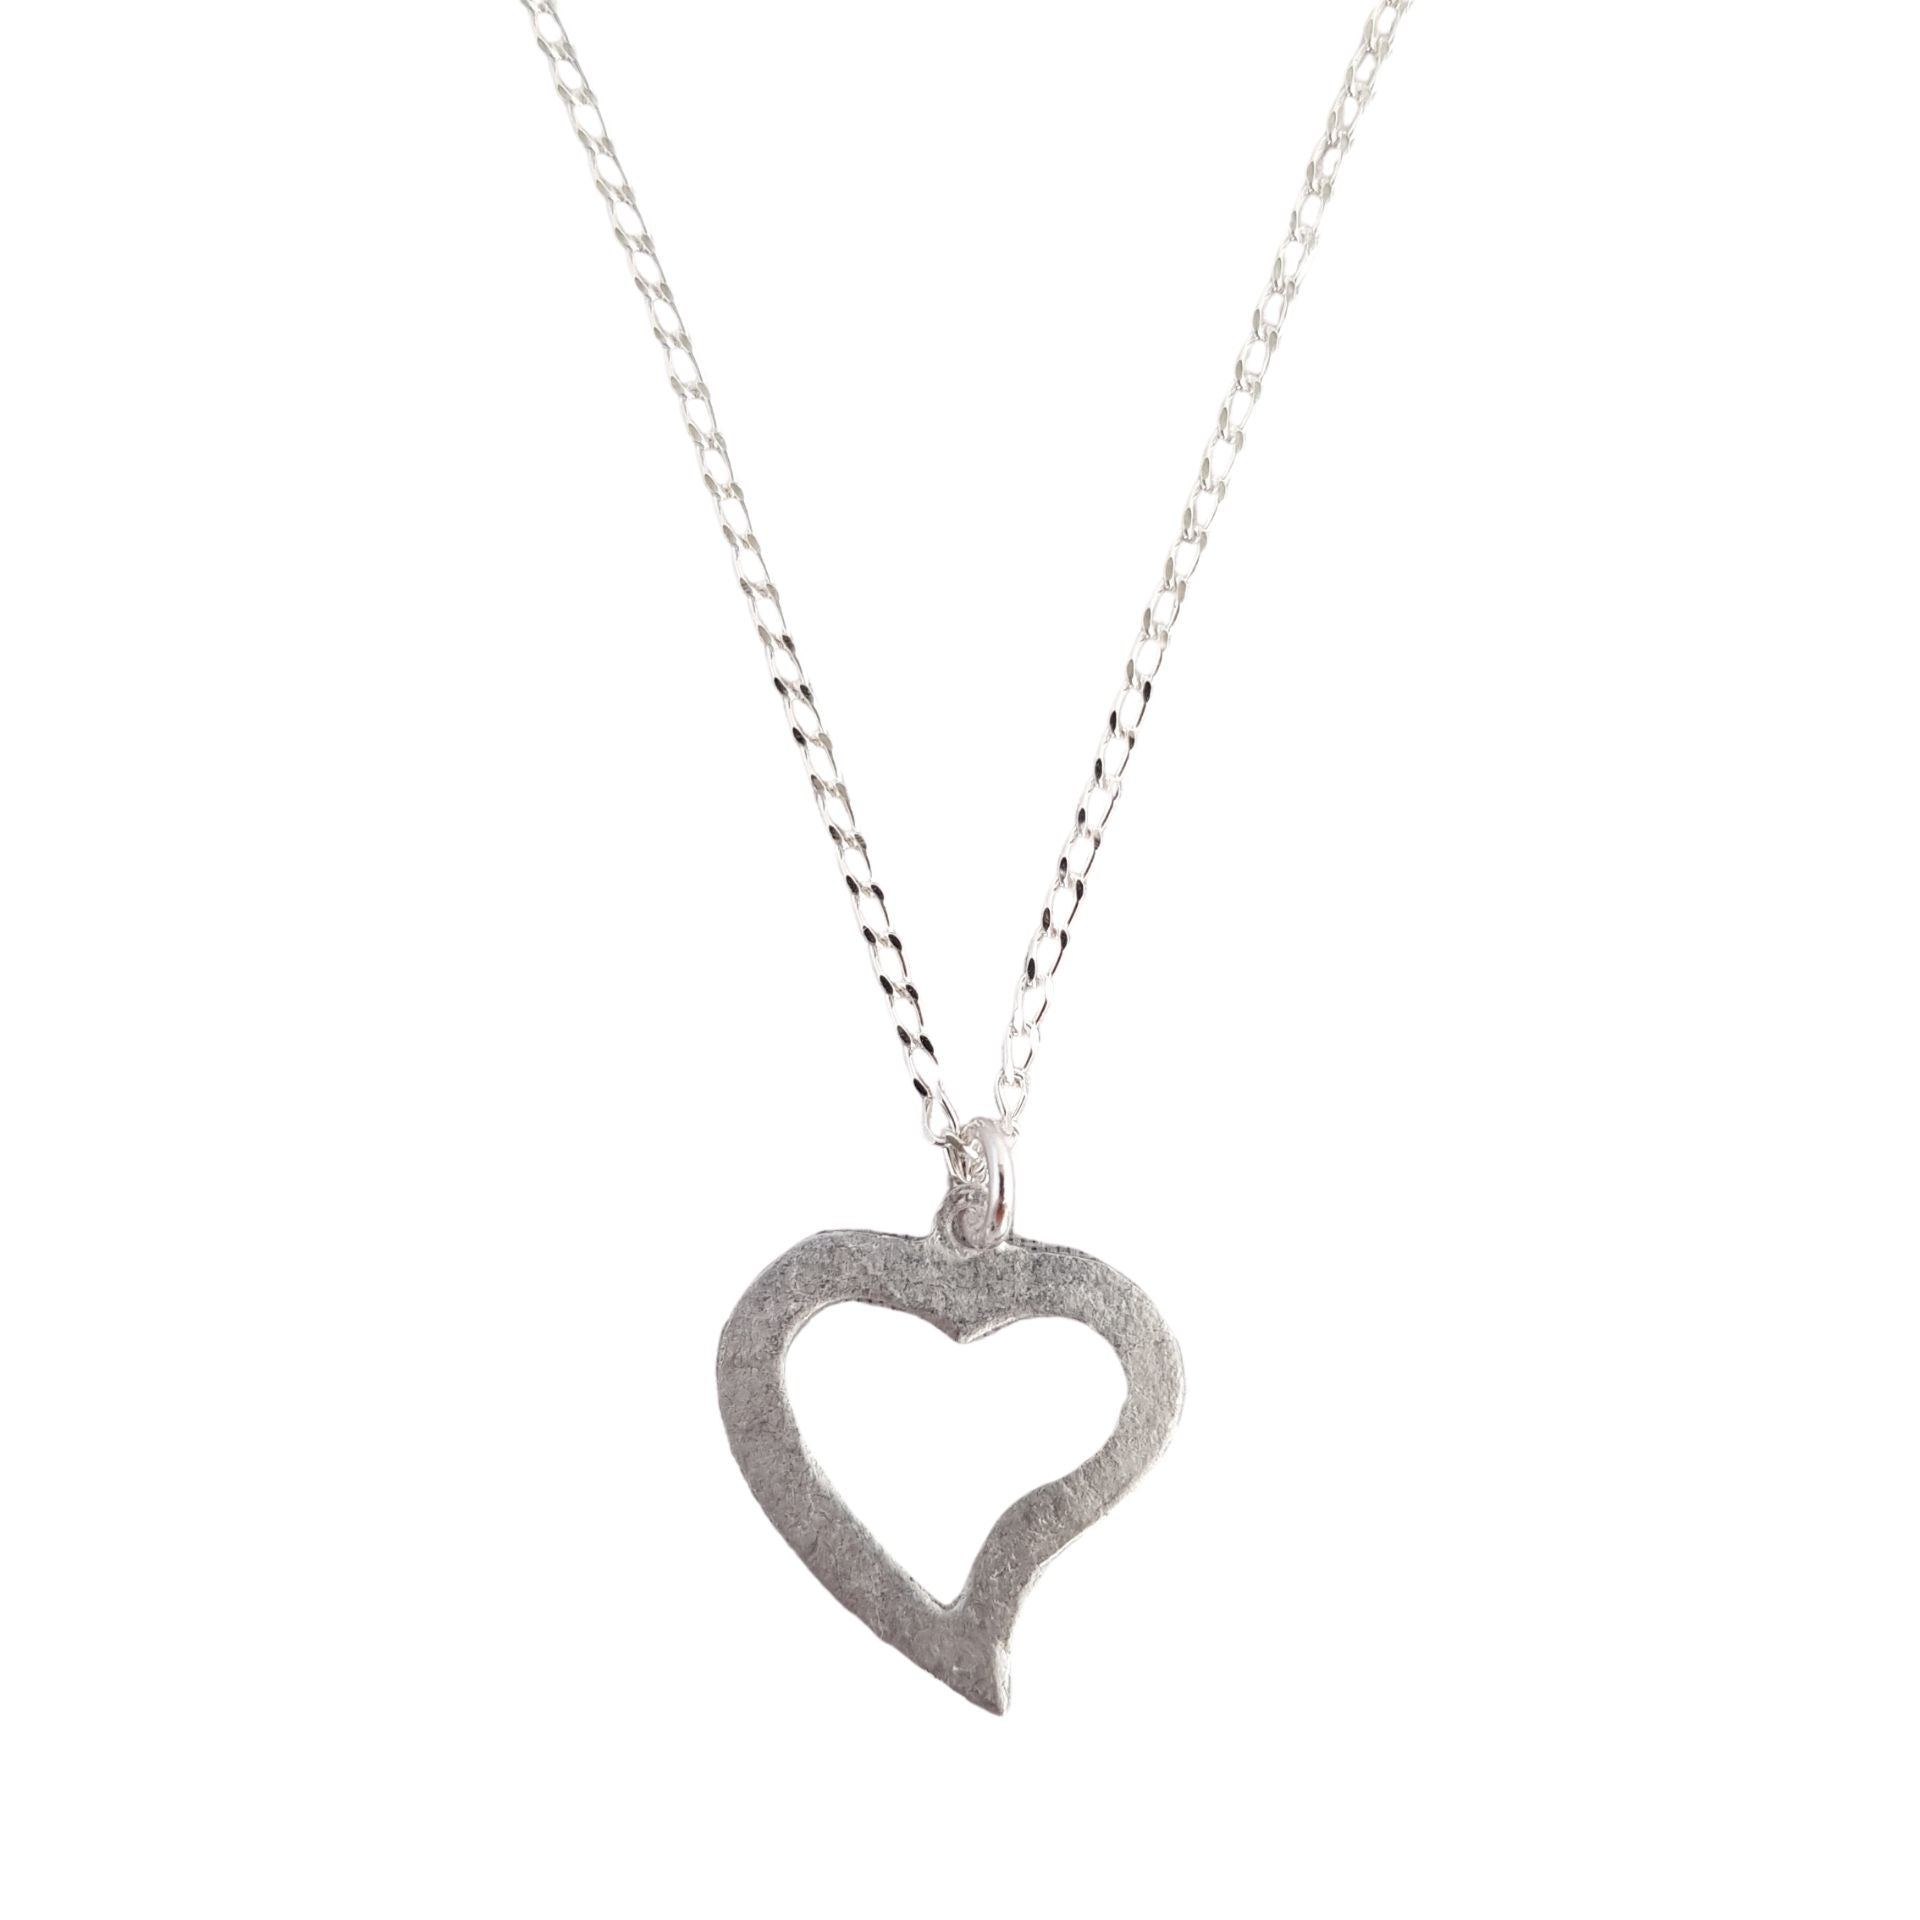 LOVEbomb Heart Cut Out Shape Pendant on Sterling Silver Chain